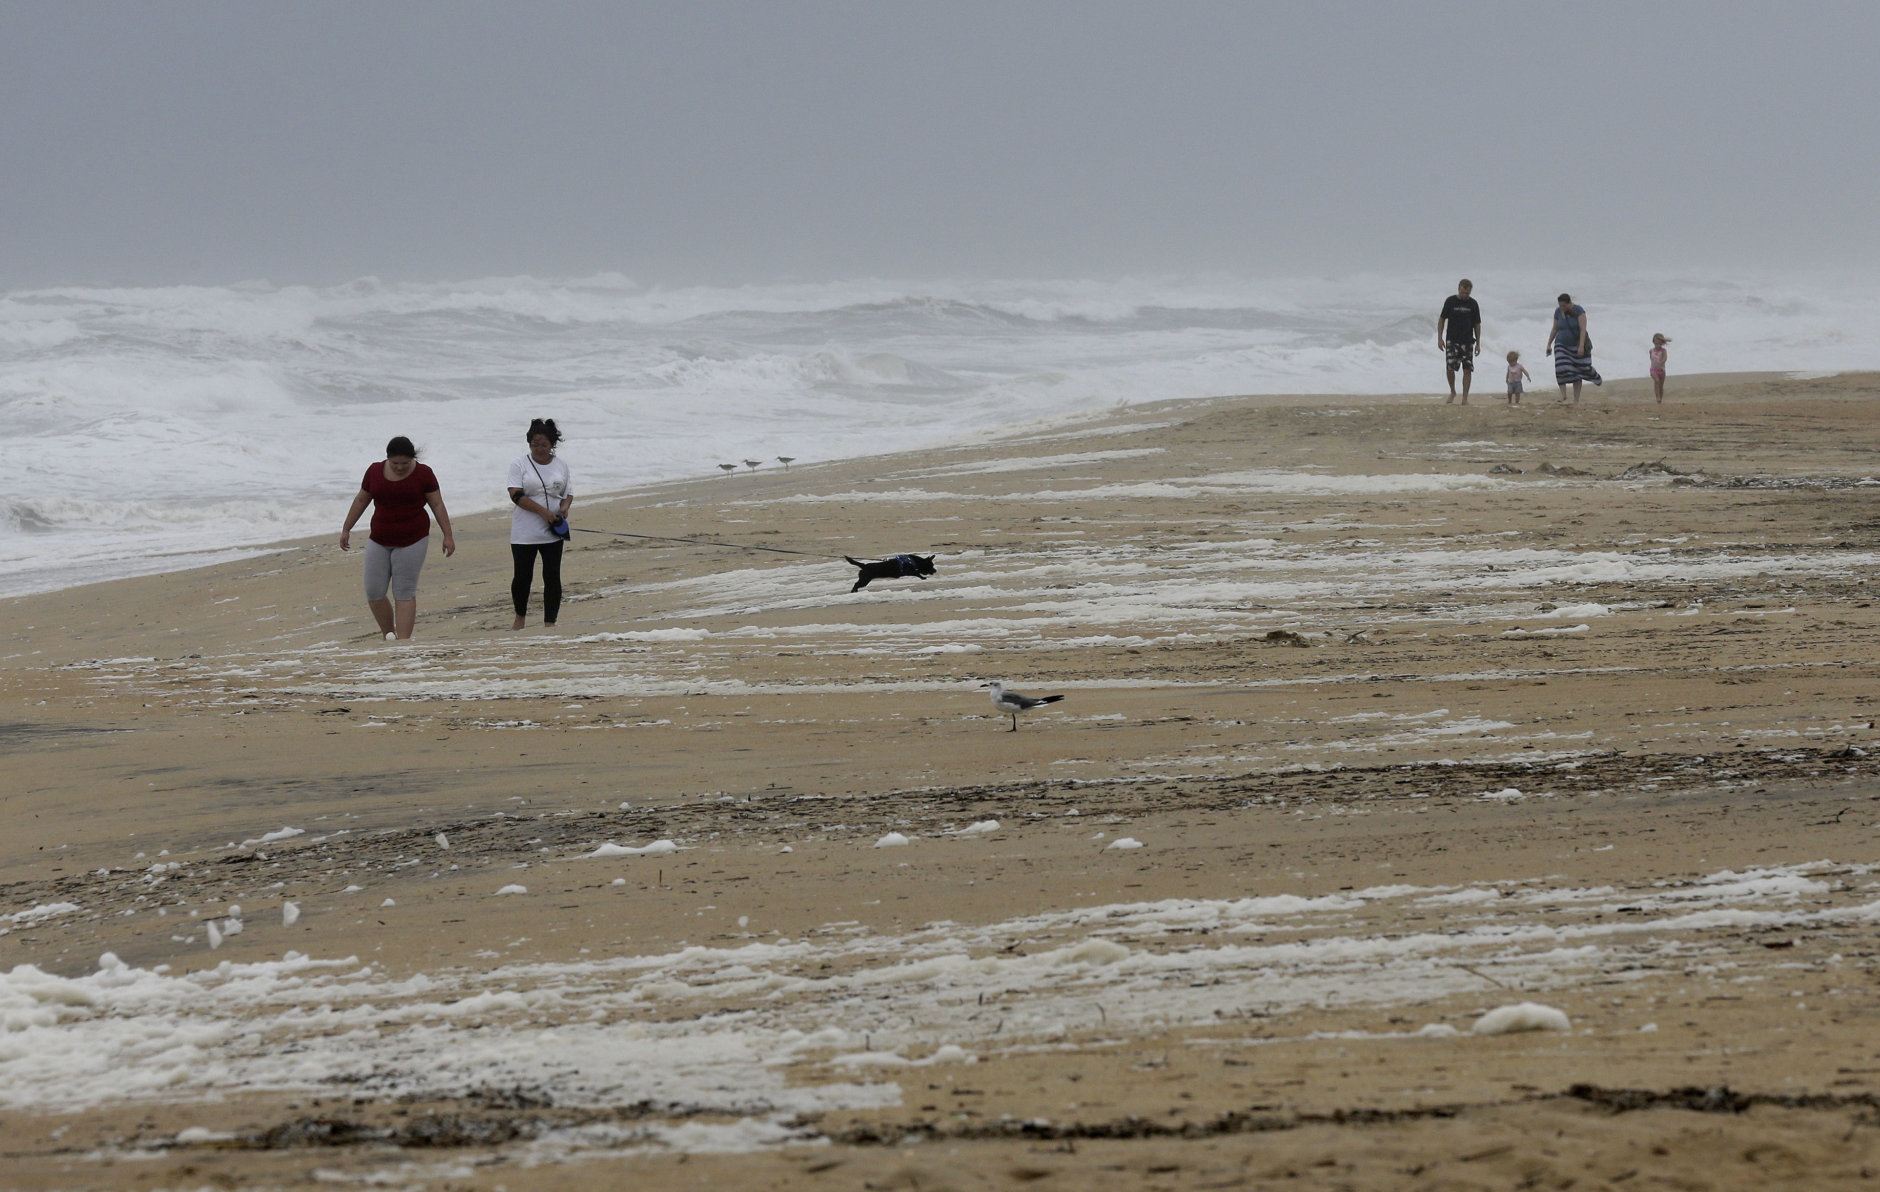 People walk the beach in Kill Devil Hills, N.C., Thursday, Sept. 13, 2018 as Hurricane Florence approaches the east coast. (AP Photo/Gerry Broome)